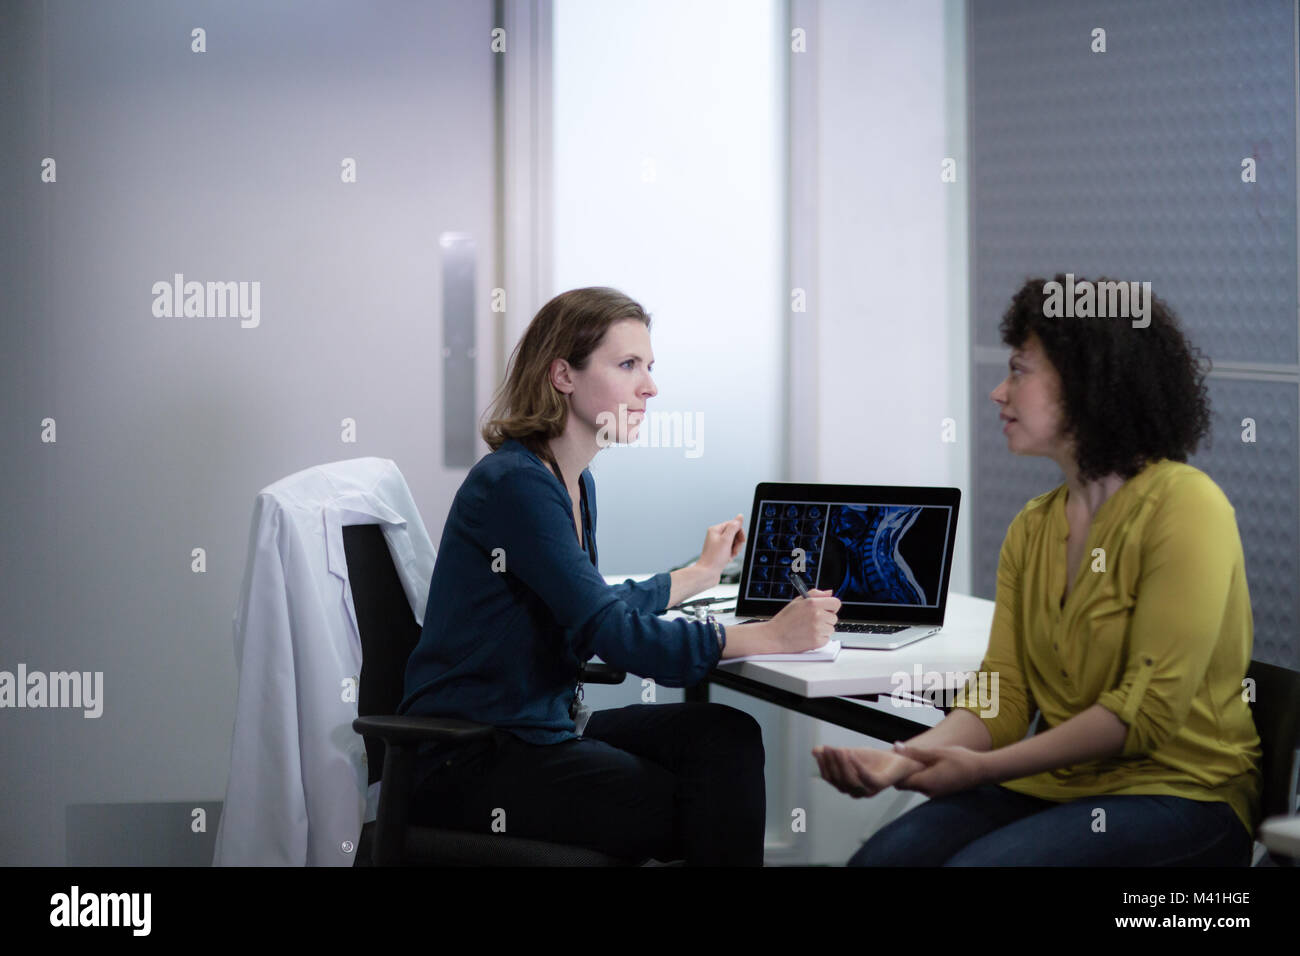 Female Medical Doctor listening to patient symptoms - Stock Image